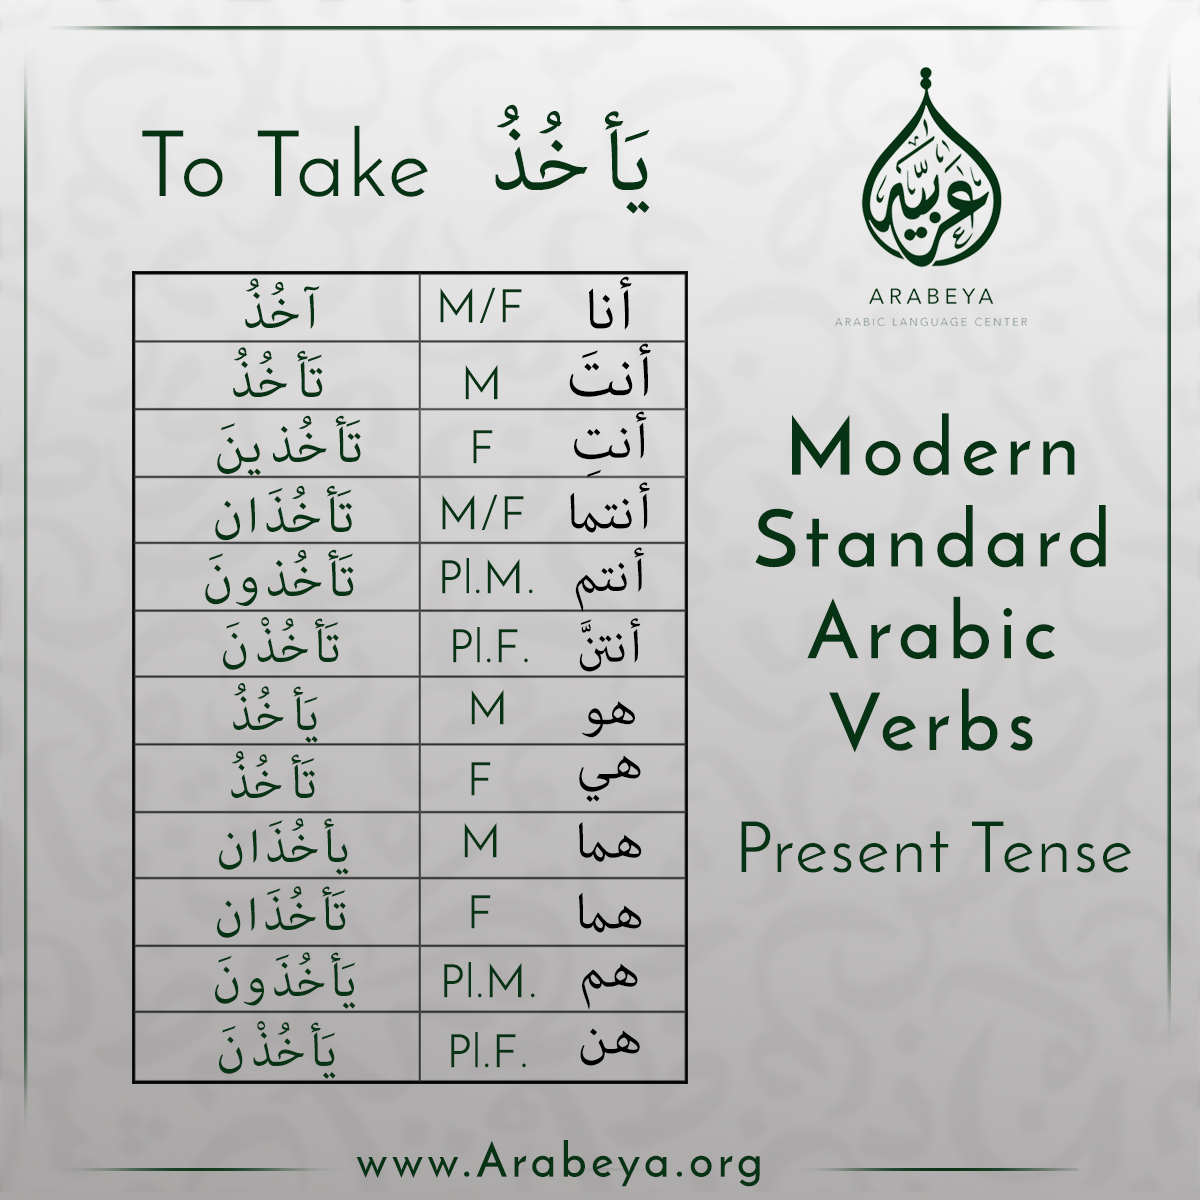 Pin By Arabeya Arabic Language Center On Present Tense